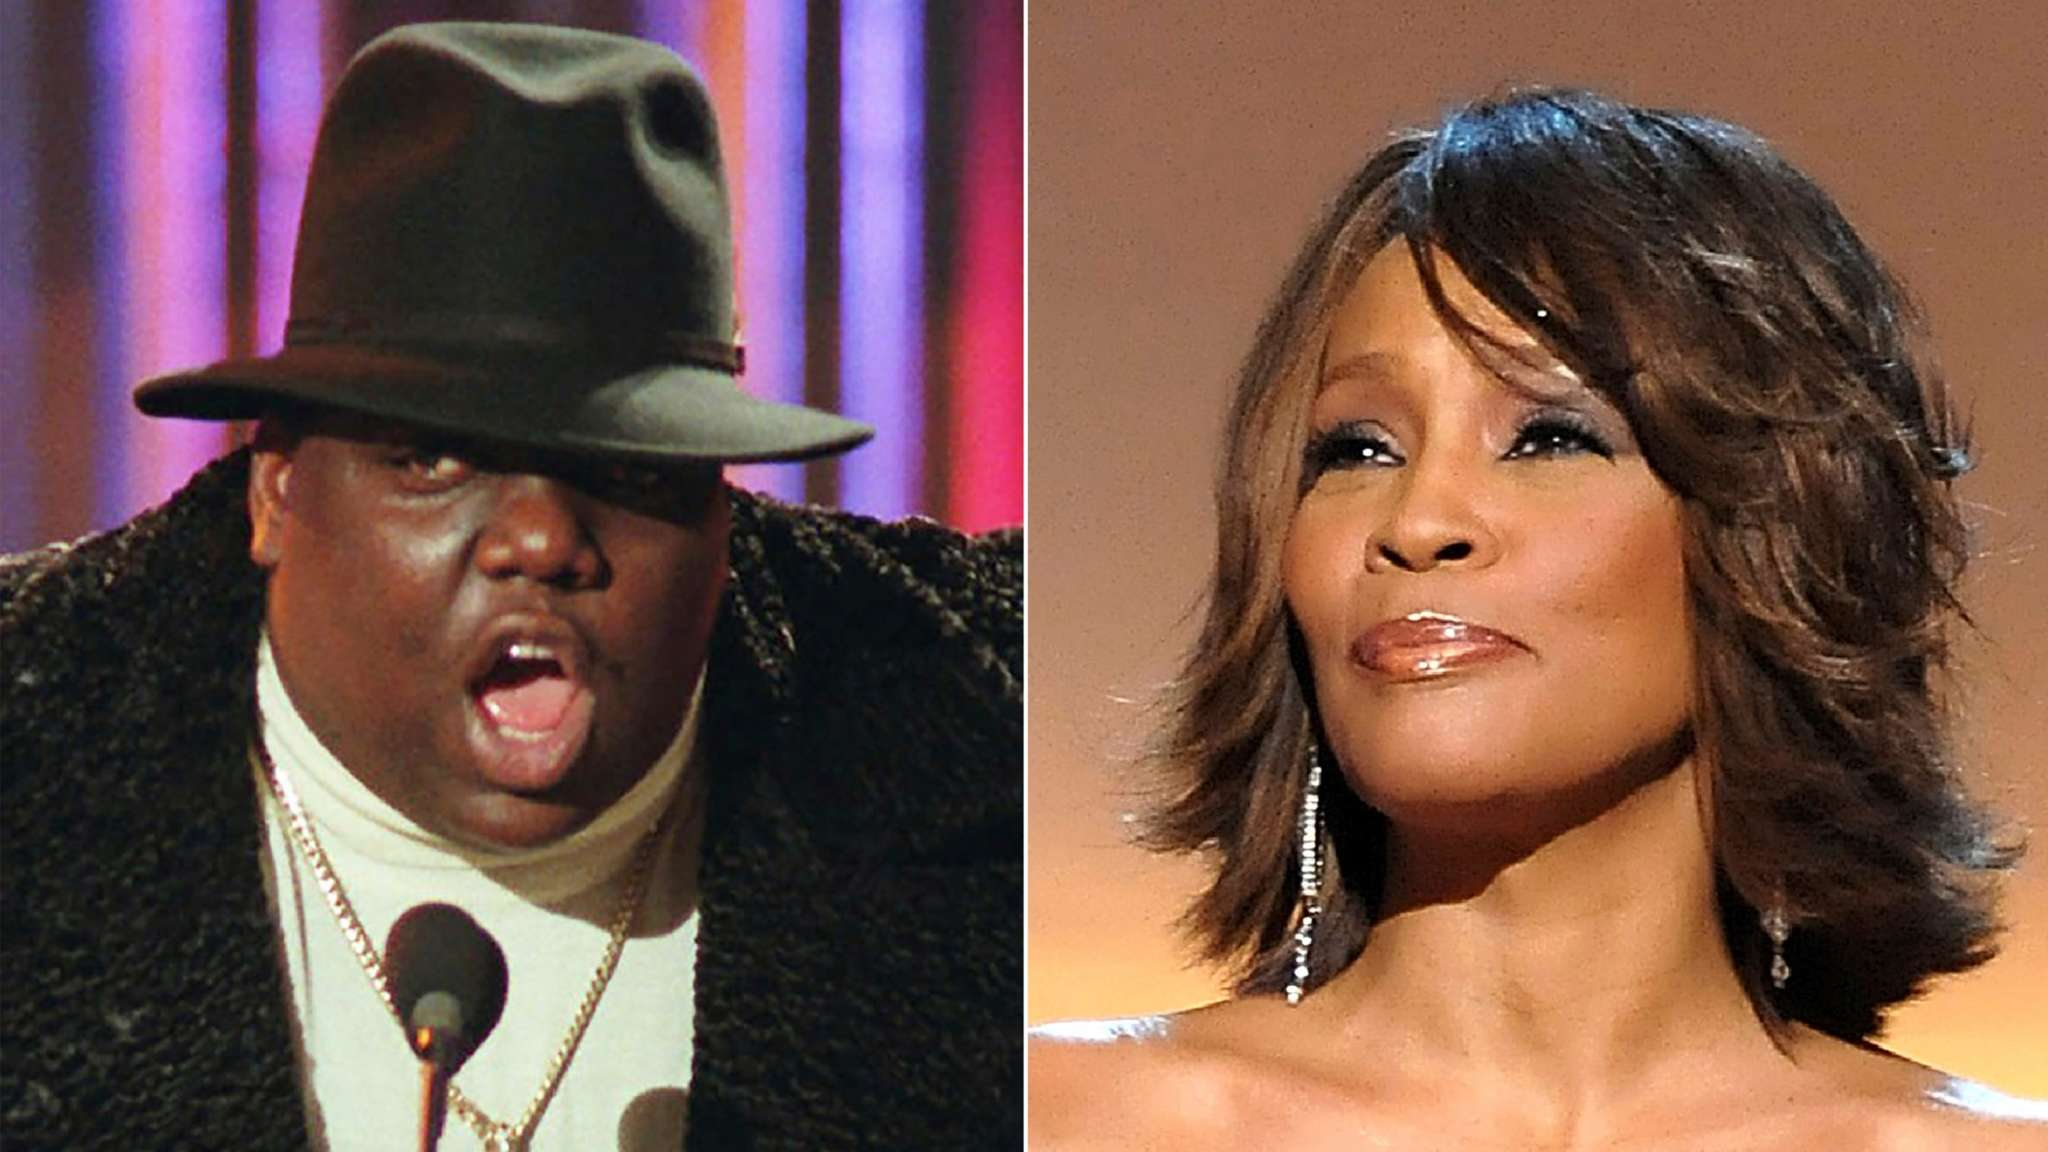 Whitney Houston, Chaka Khan, And The Notorious B.I.G. Are Among The Nominees For The 2020 Rock & Roll Hall Of Fame